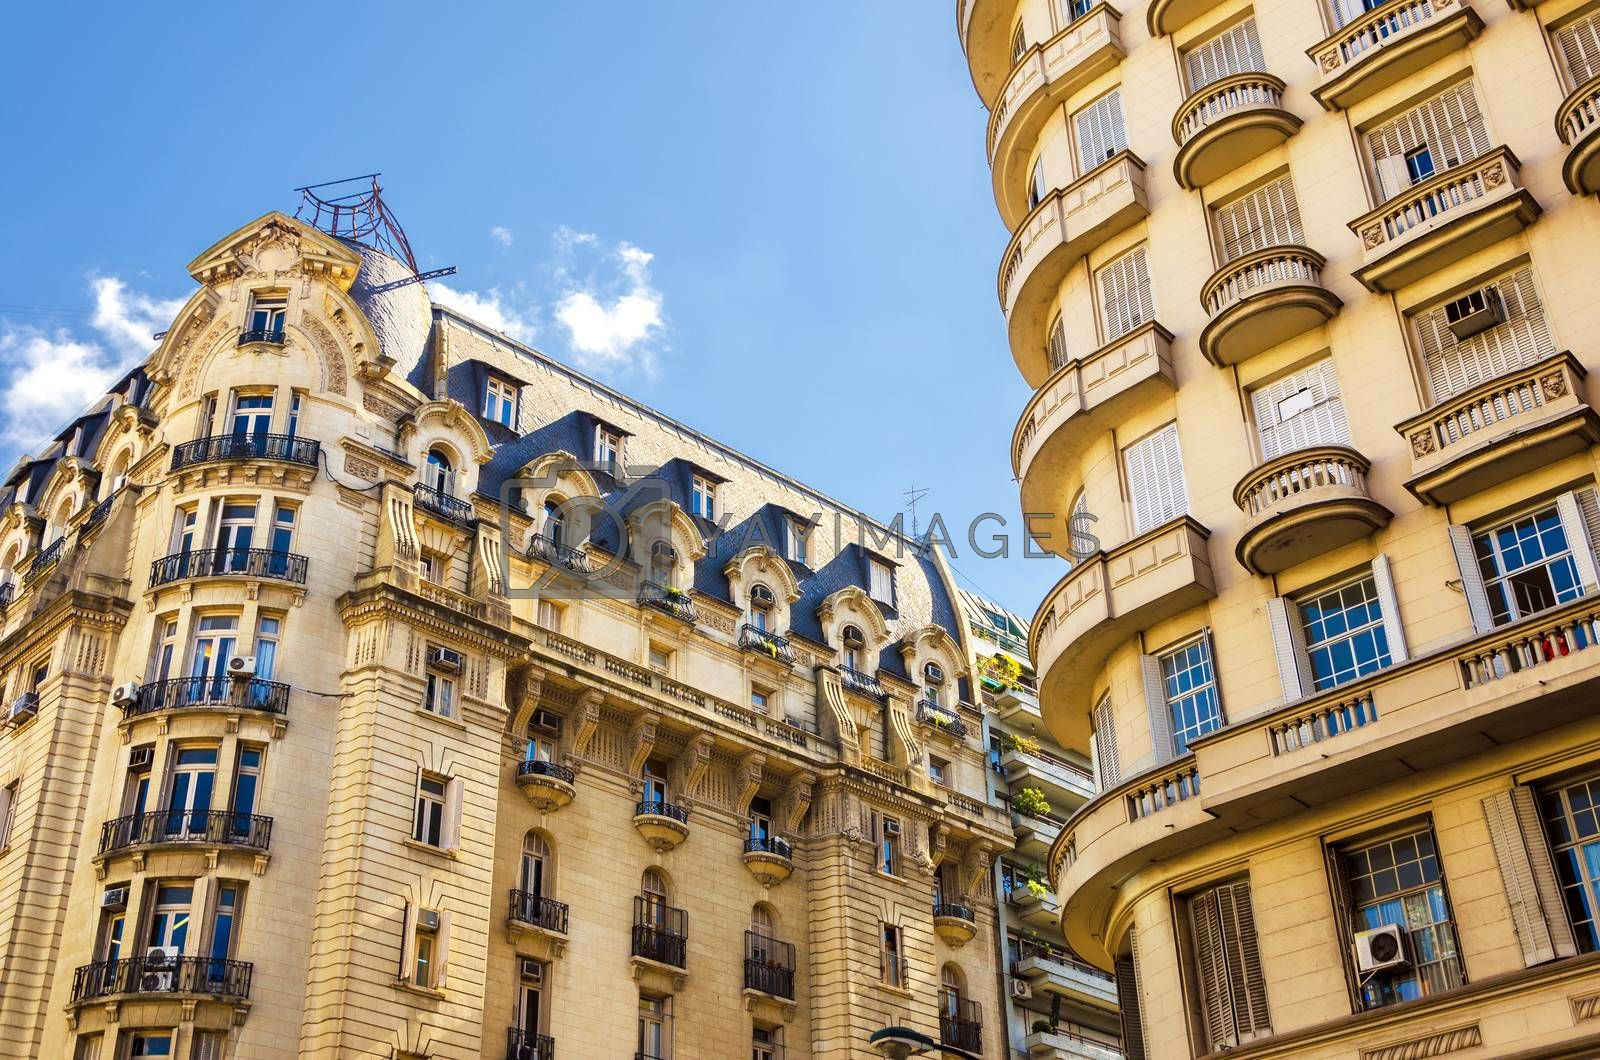 Beautiful French style architecture in the Recoleta neighborhood of Buenos Aires, Argentina